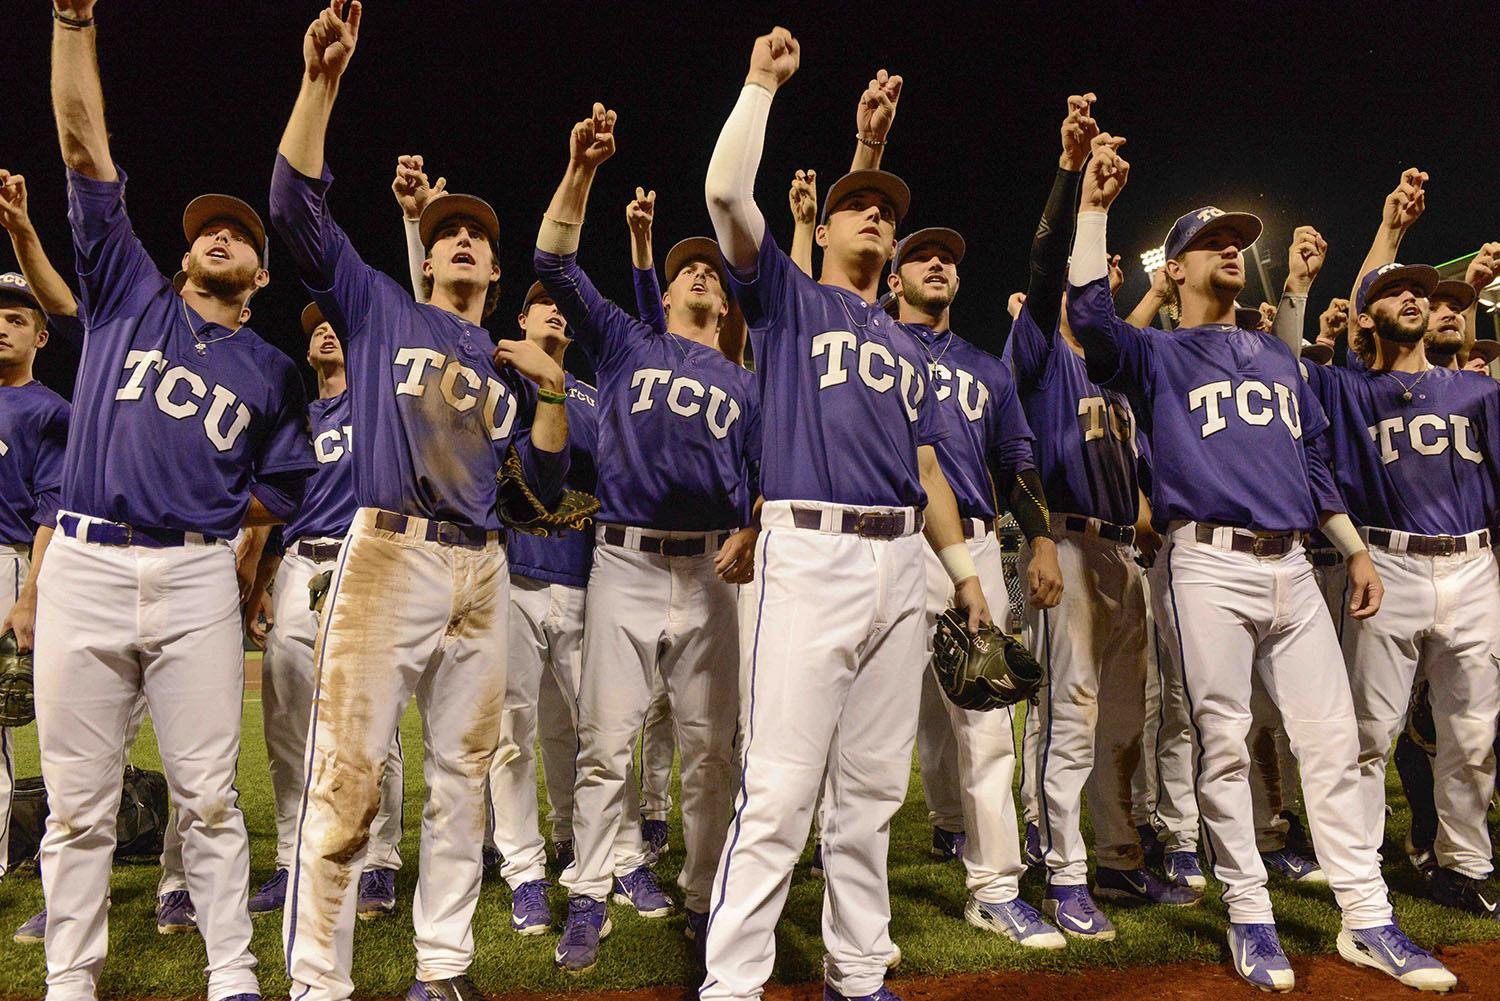 TCU celebrates with the fans in the stands, following an NCAA College World Series baseball elimination game against LSU in Omaha, Neb., Thursday, June 18, 2015. TCU won 8-4, sending LSU home. (AP Photo/Mike Theiler)